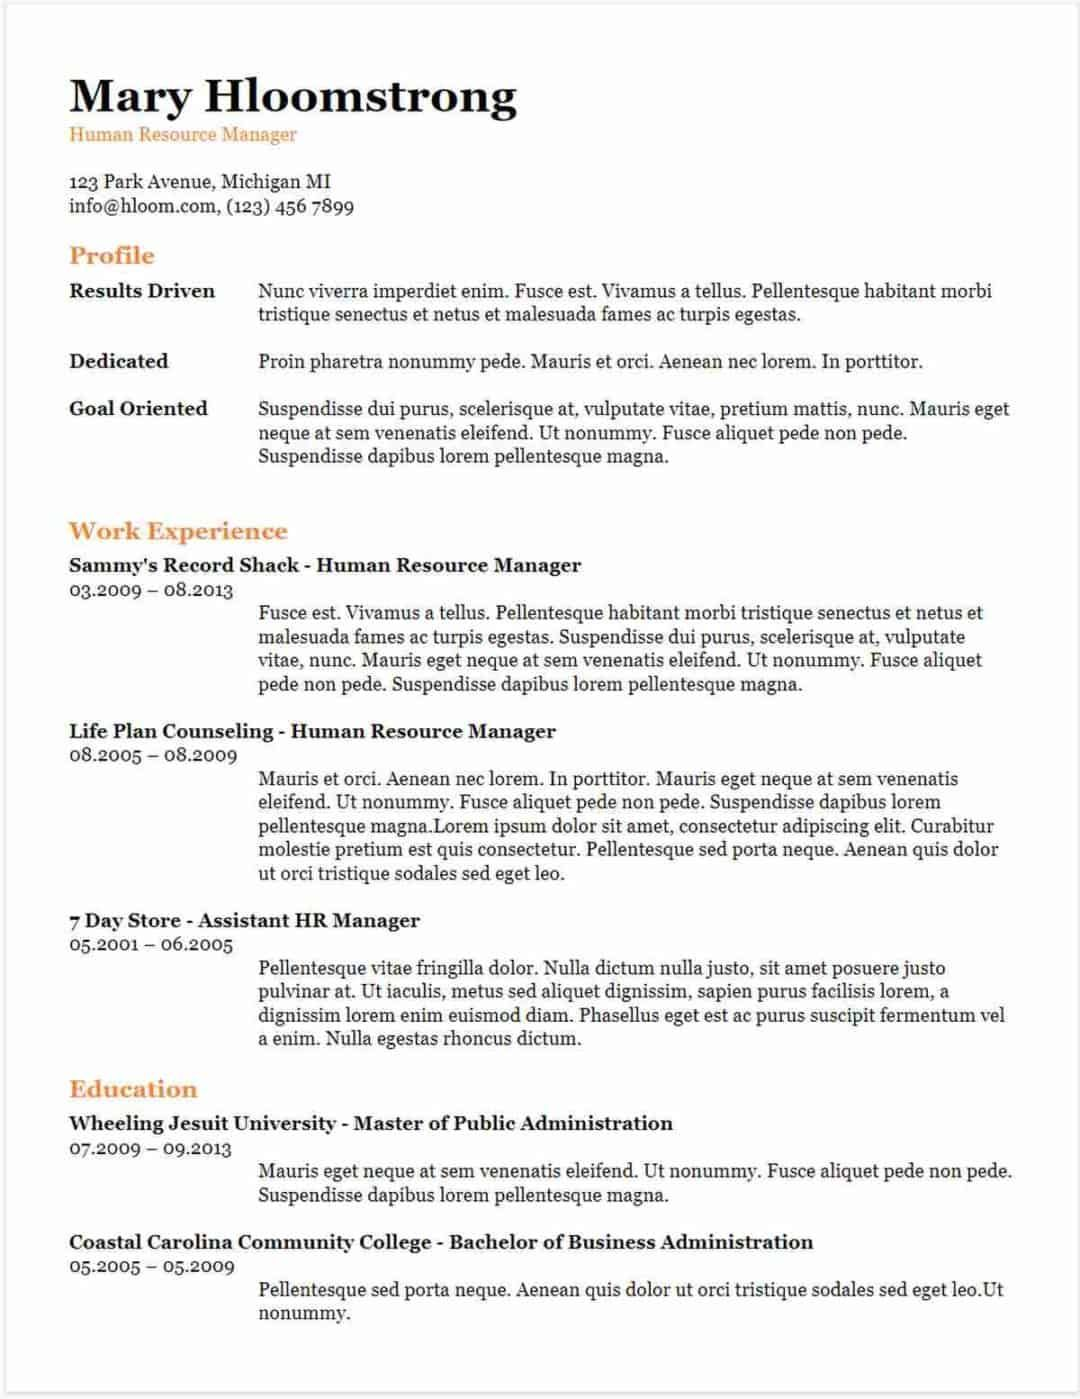 google docs resume templates downloadable pdfs sample chronological template college Resume Chronological Resume Template Google Docs